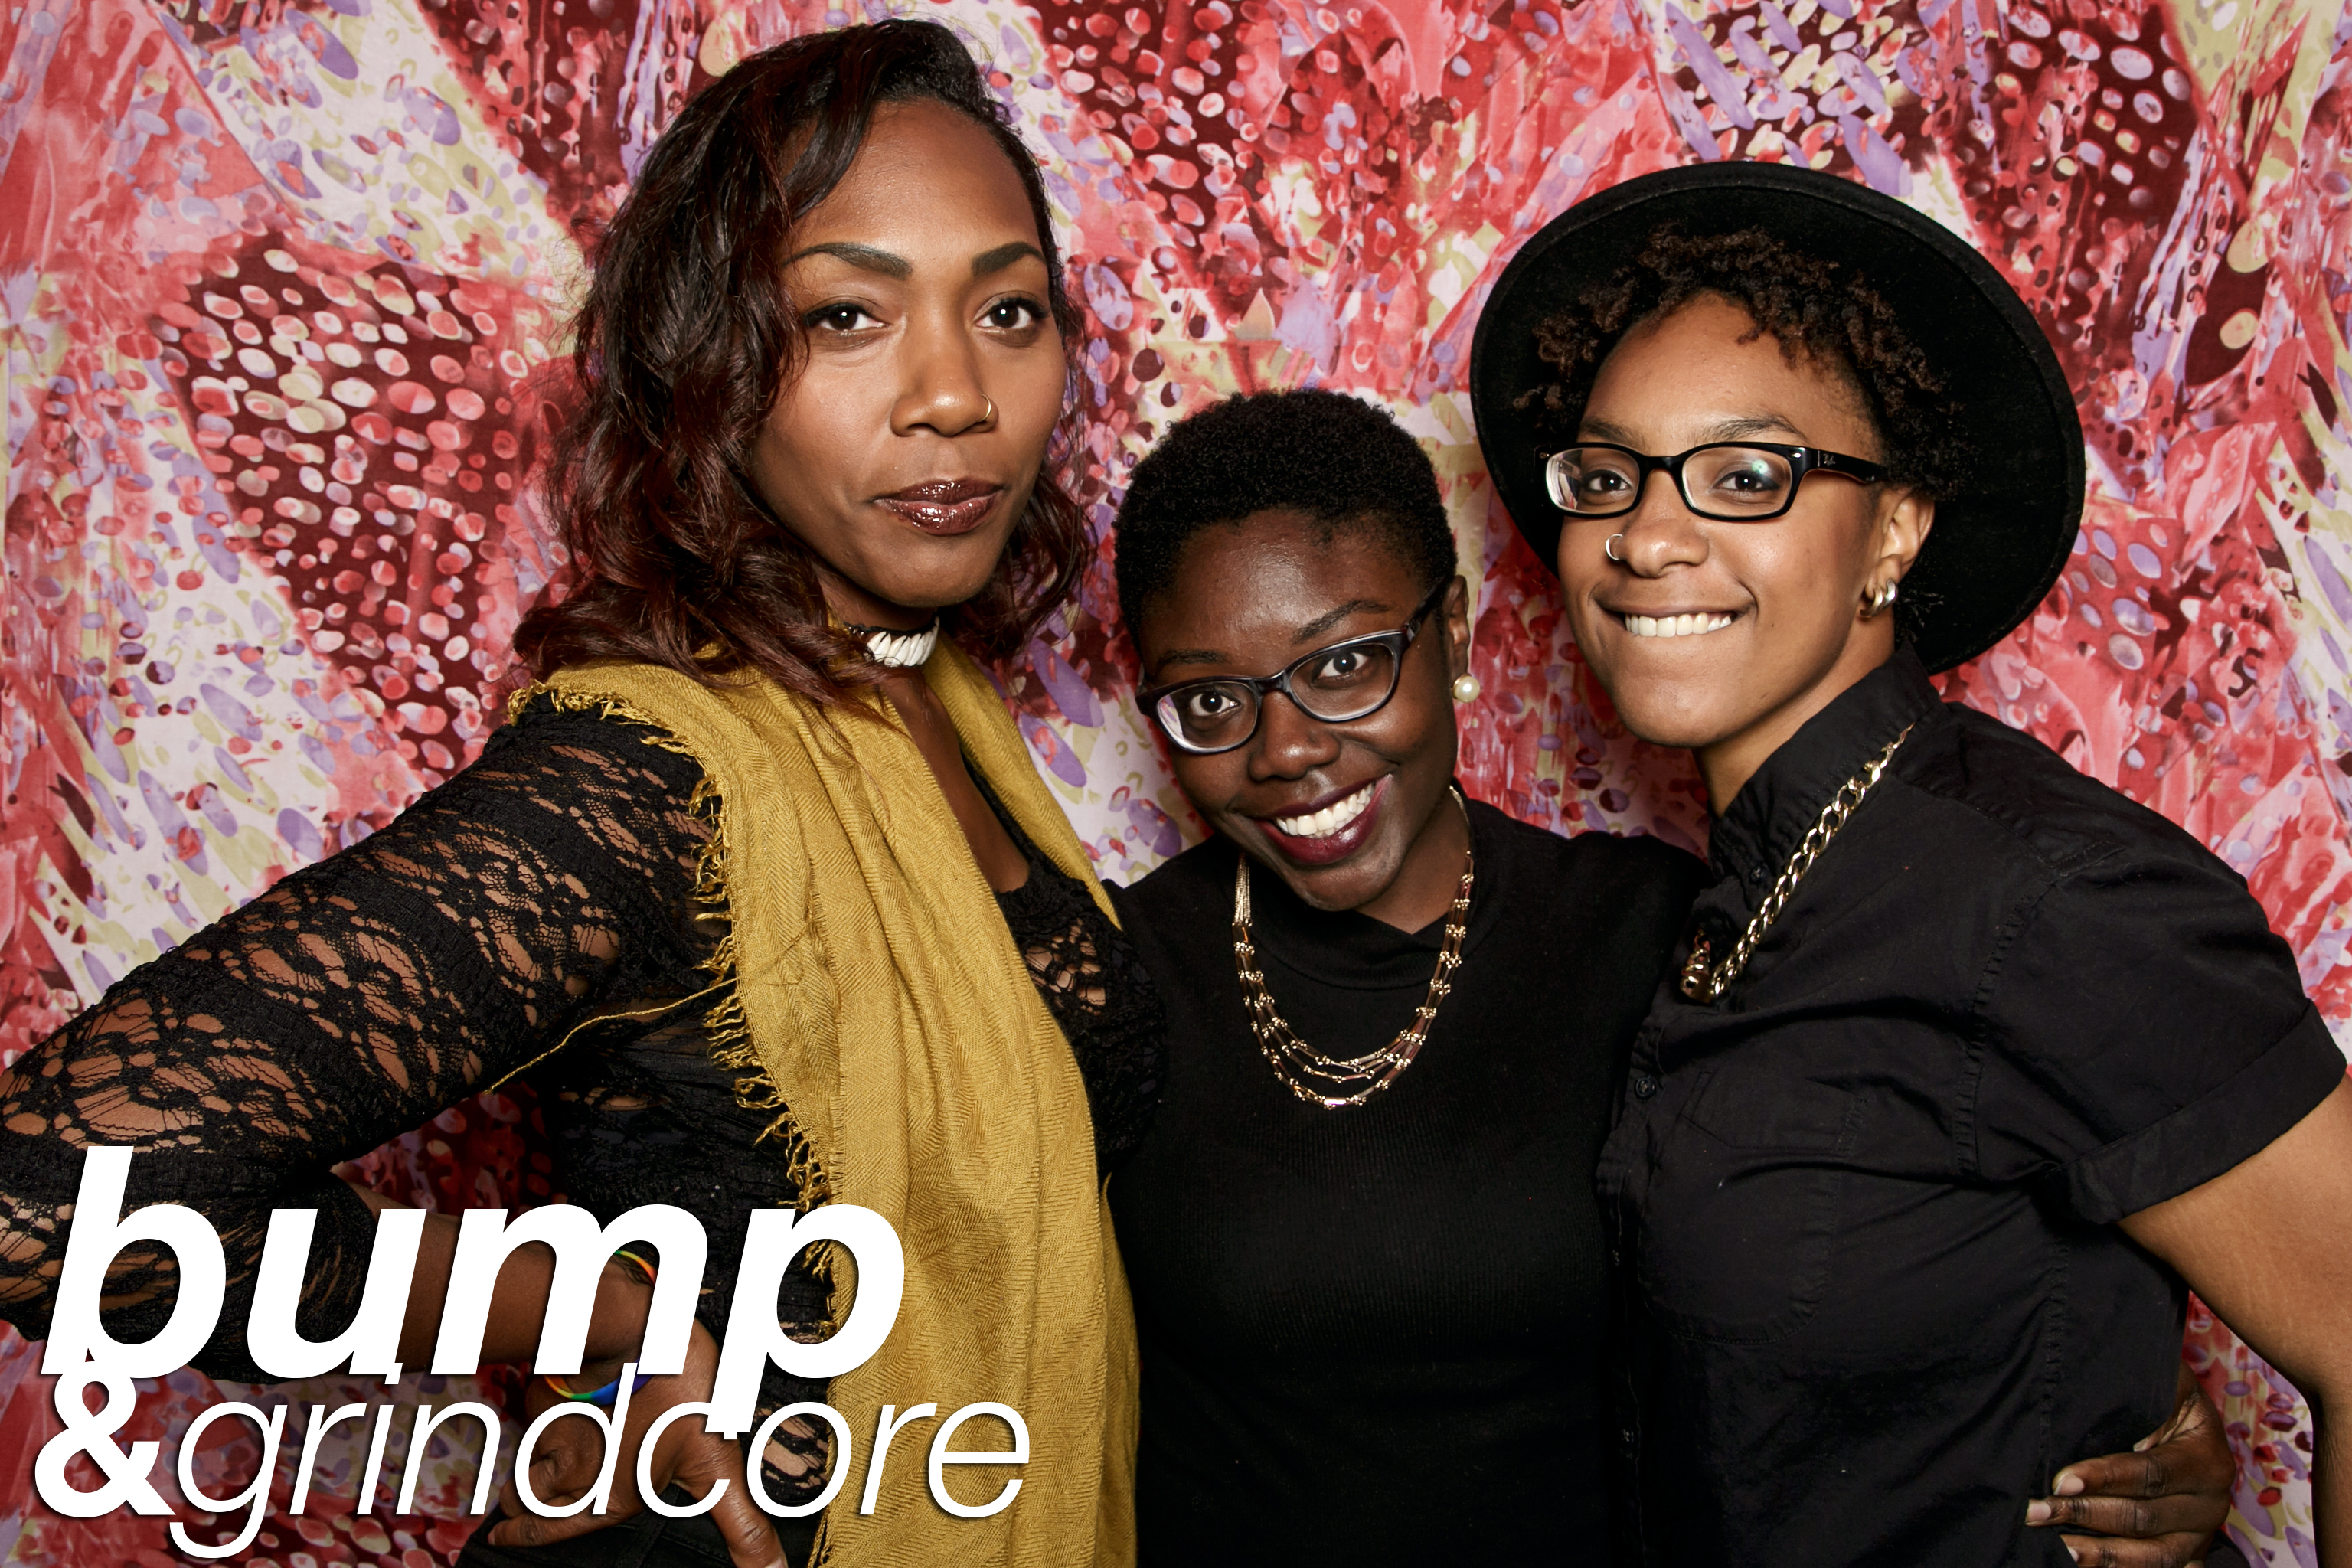 photo booth portraits from Bump and Grindcore's Kanye Tribute at Beauty Bar, September 2016